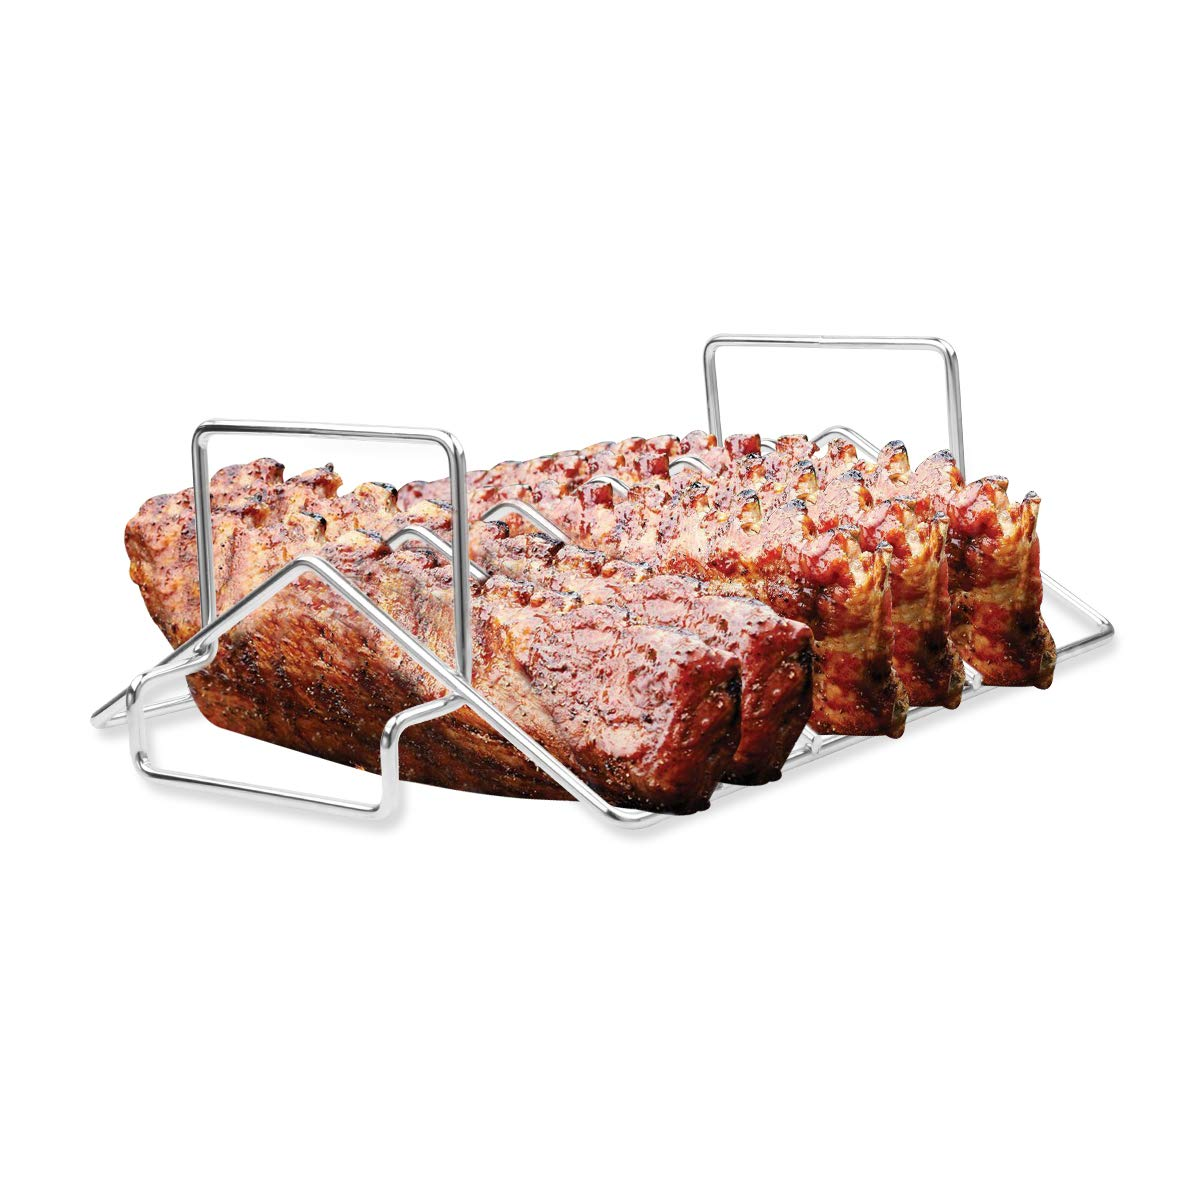 BBQ Rib Rack Grilling Rib Rack for Smoking,Stainless Steel Roast Rack Dual Purpose fit for Big Green Egg and Kamado Joe by Mydracas